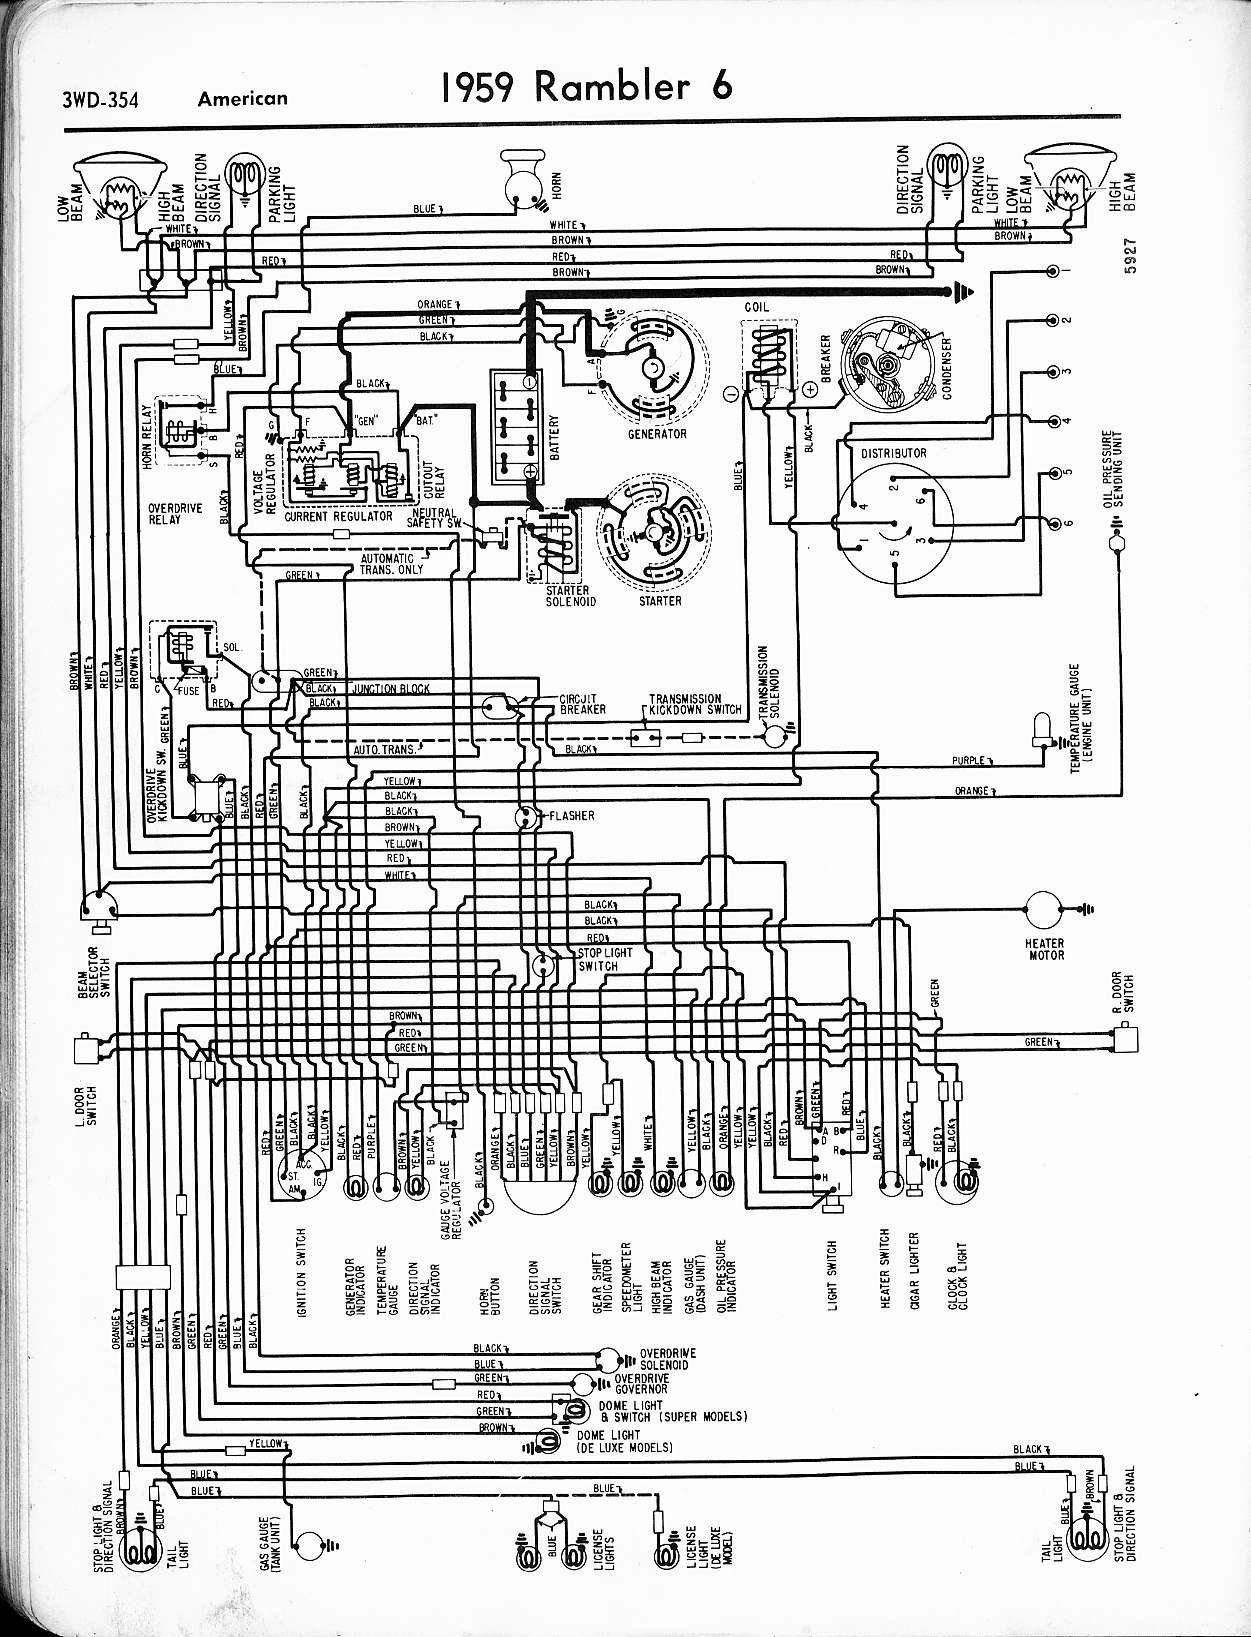 71 Javelin Wiring Diagram besides Ramblerindex additionally Gmc C7500 Topkick Fuel Pump Wiring Diagram moreover 4l8wa Chevrolet 85 Chevy 305 Cu Van Involved Hit furthermore RepairGuideContent. on 1971 amc javelin wiring diagram